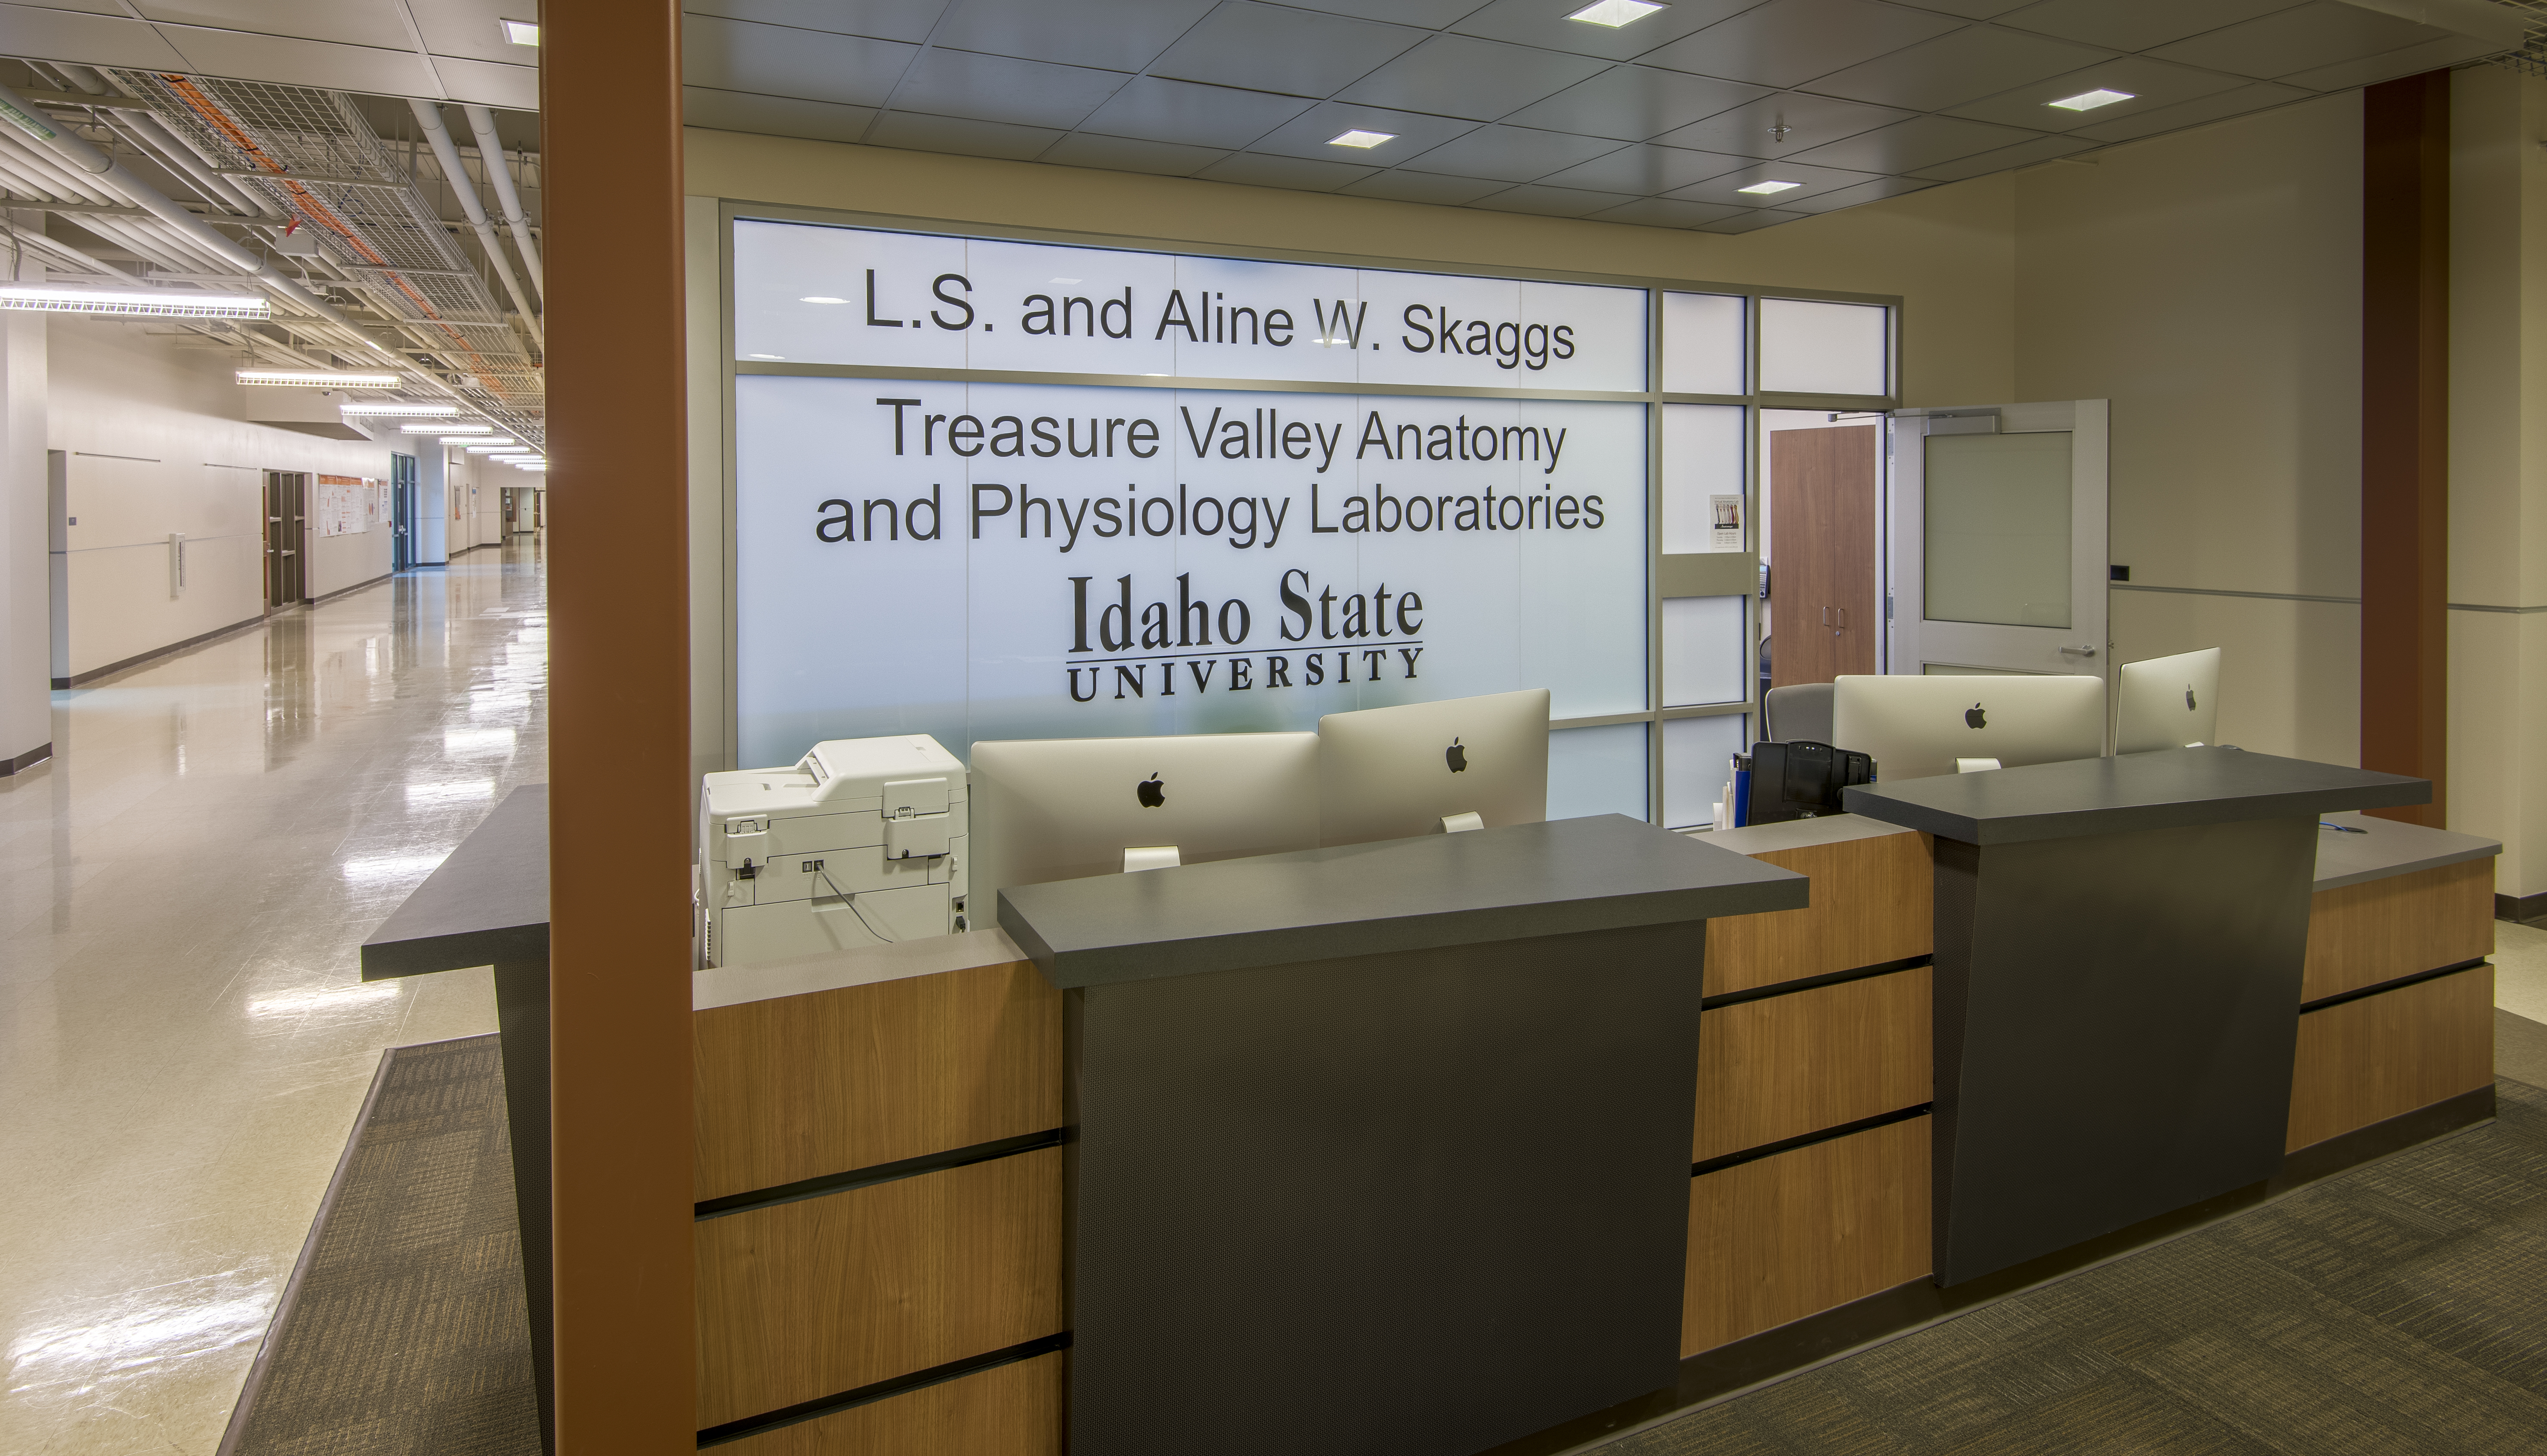 Treasure Valley Anatomy and Physiology Laboratories